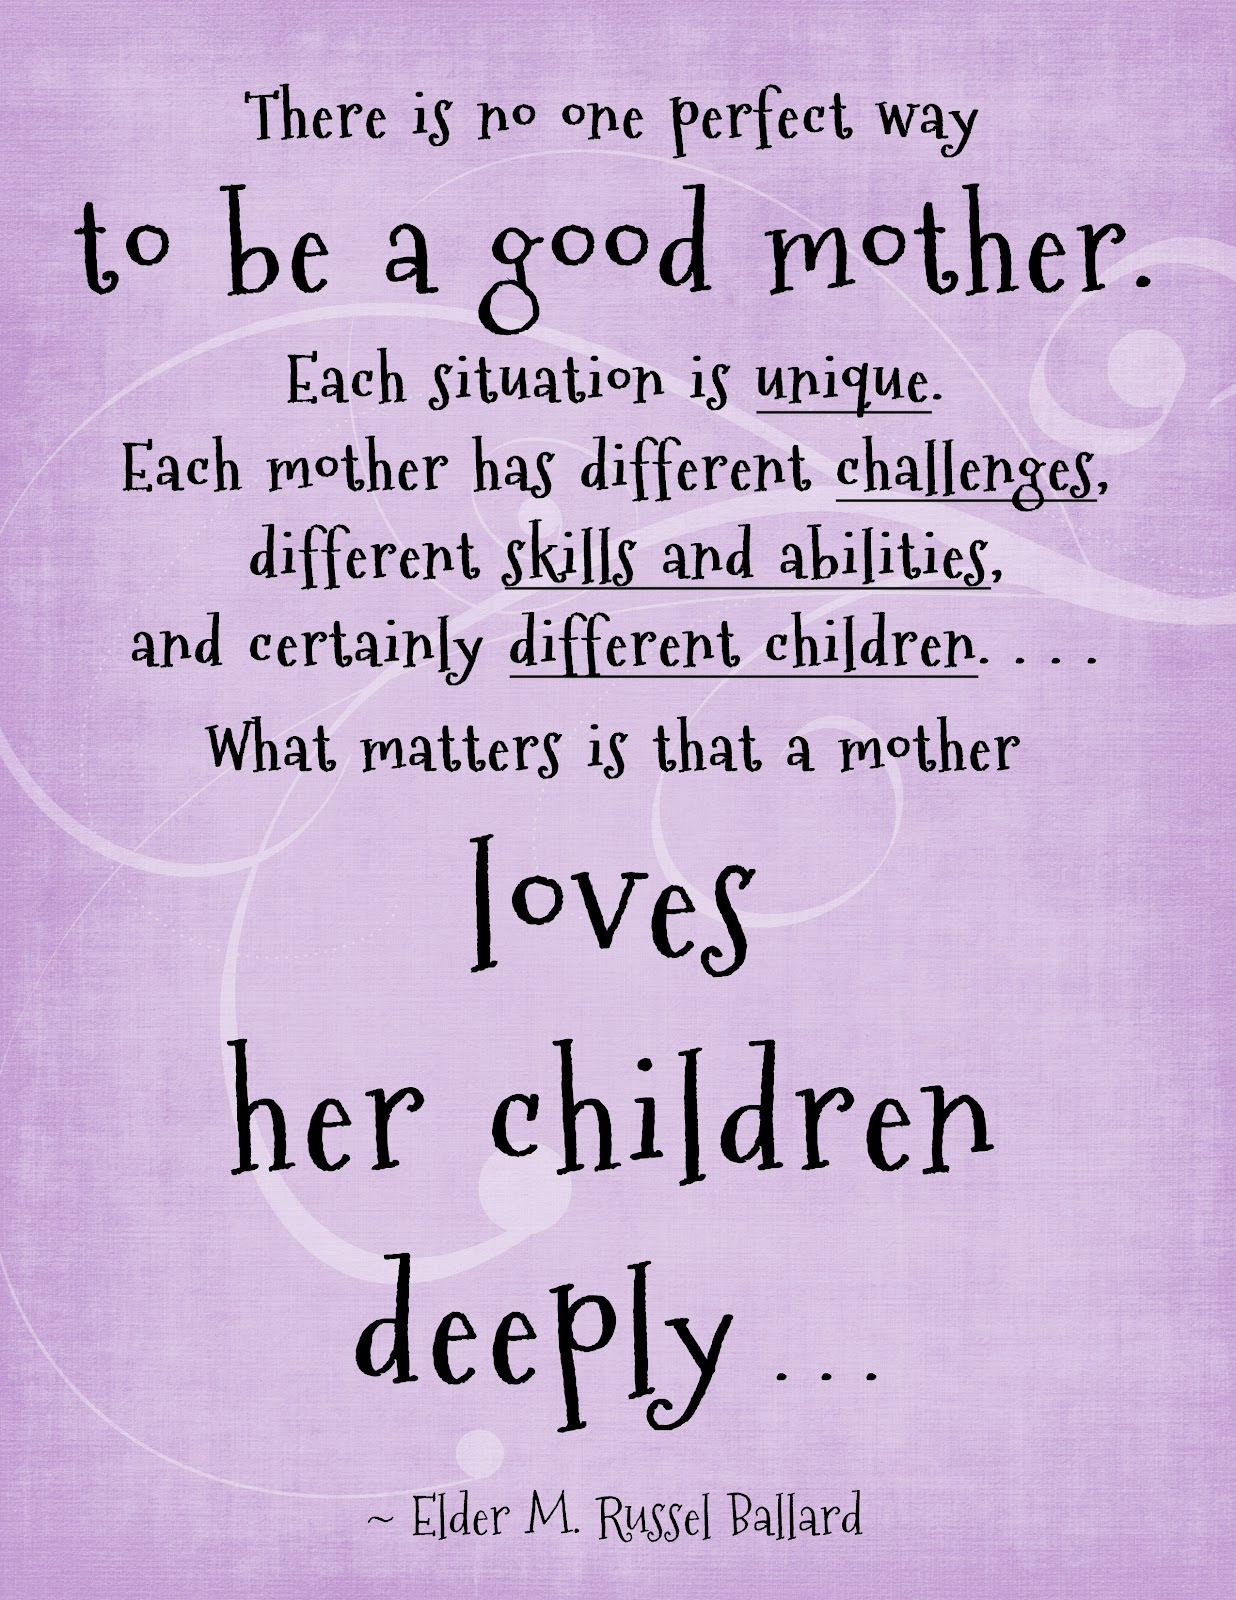 Quotes About Being A Good Mother 52 Quotes